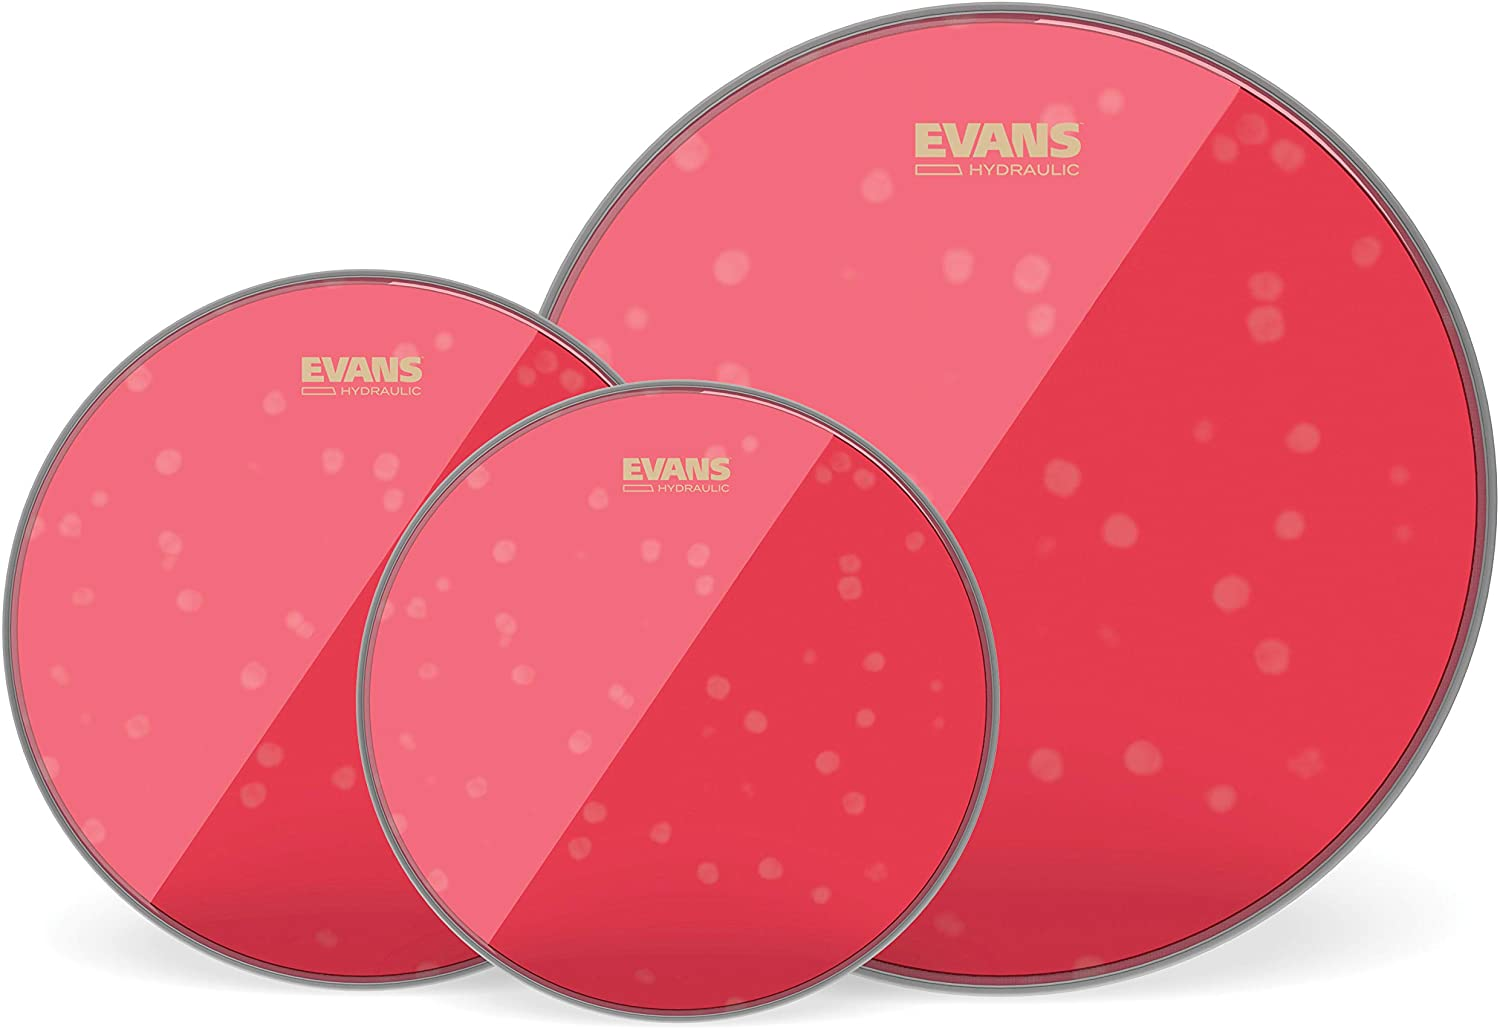 "Evans Hydraulic Red Standard Pack (12"", 13"", 16"") with 14"" UV1 Coated Snare Batter"